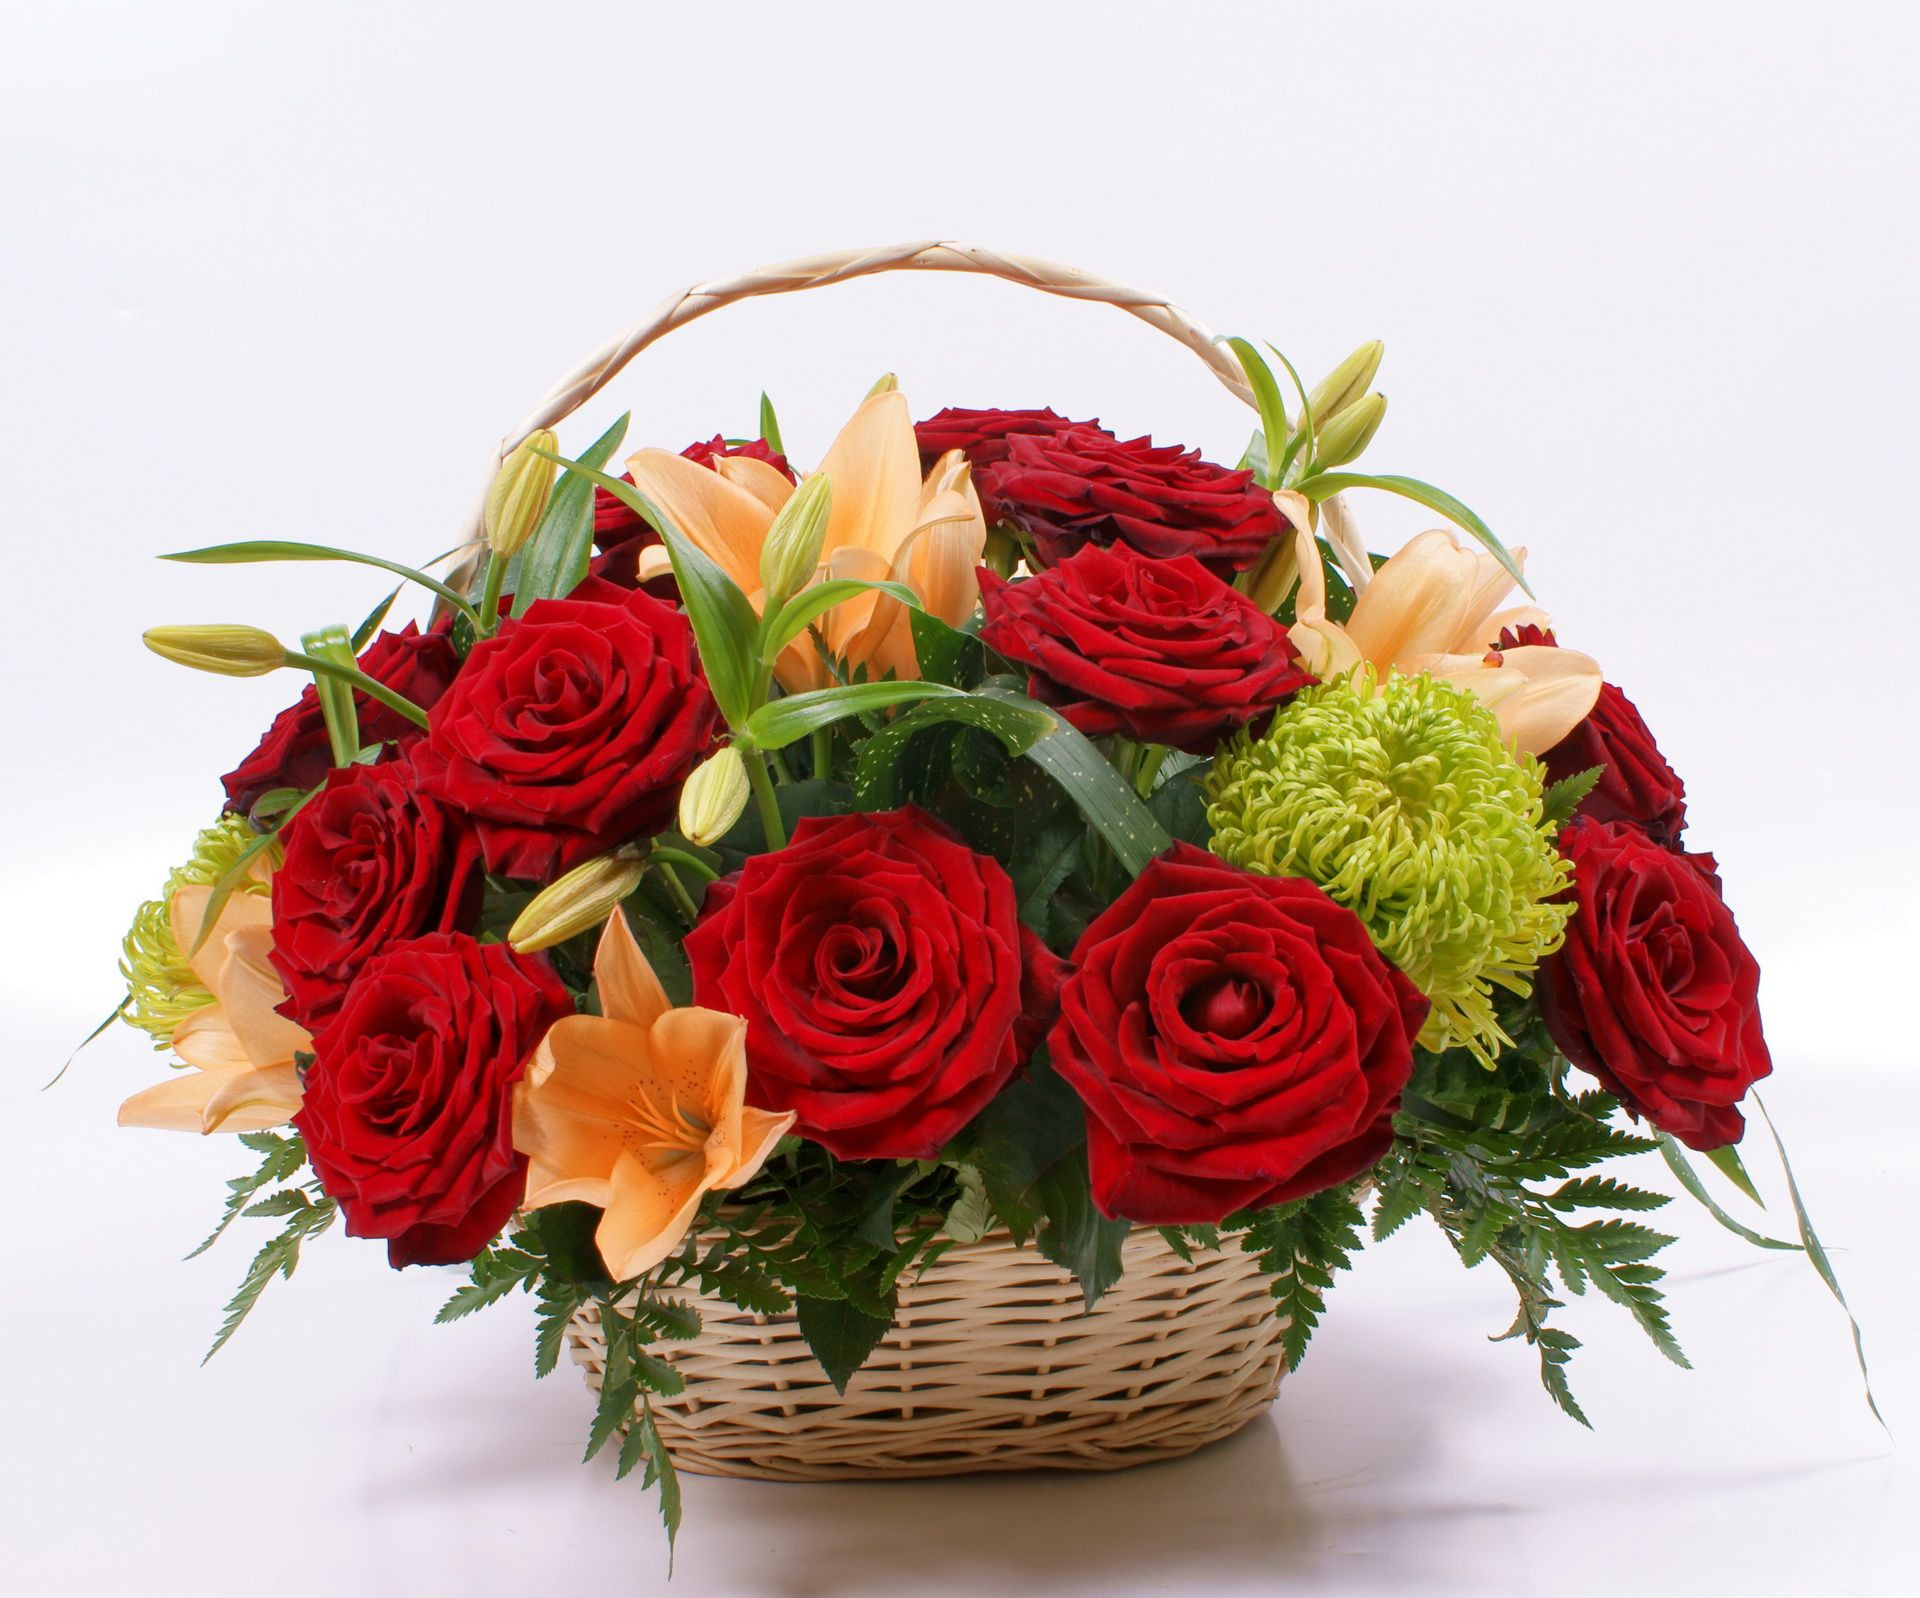 With one of the best flower delivery services My Flower Tree bring a color and freshness to your special occasions with beautiful and amazing flowers